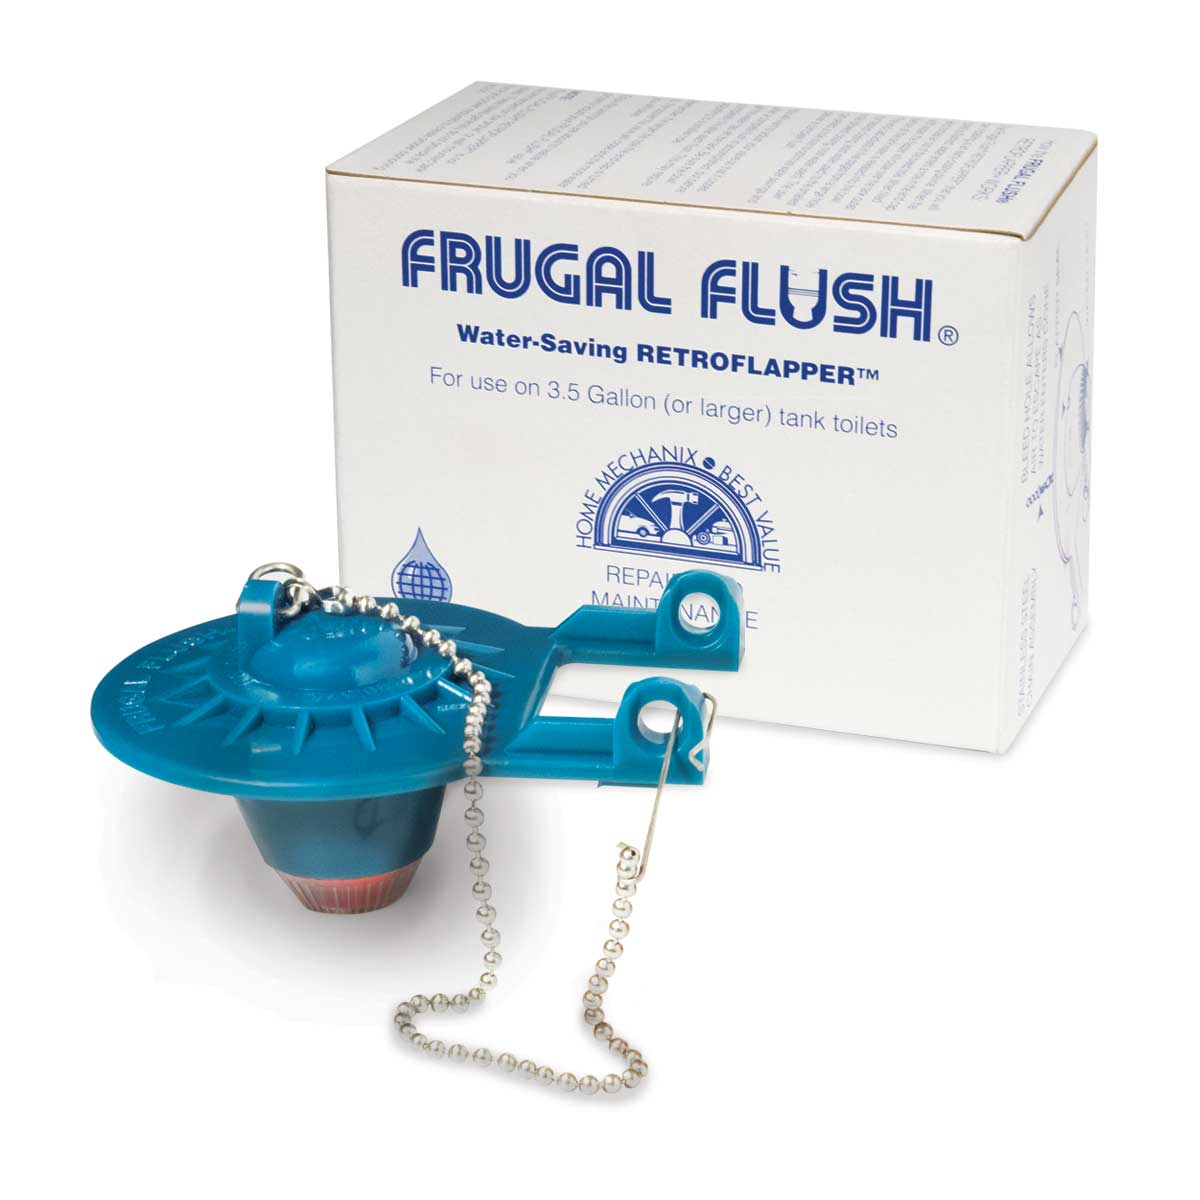 Frugal Flush Retro flapper